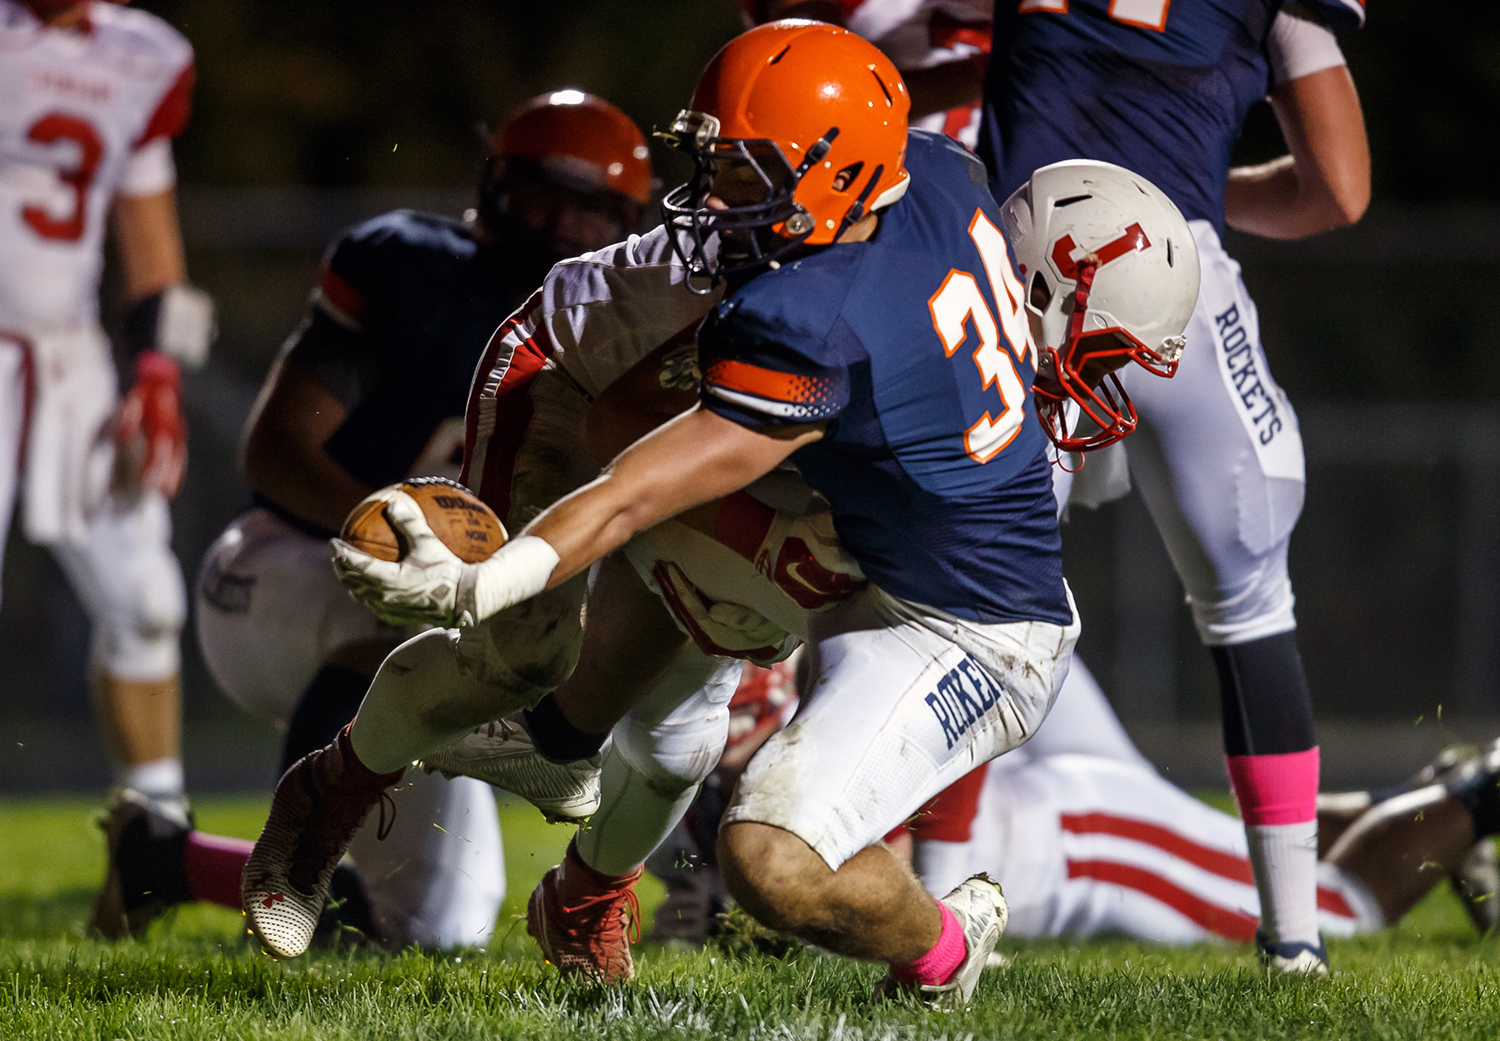 Rochester's Evan Sembell (34) puts the ball over the goal line for a touchdown against Jacksonville during the first half at Rocket Booster Field, Friday, Oct. 10, 2014, in Rochester, Ill. Justin L. Fowler/The State Journal-Register